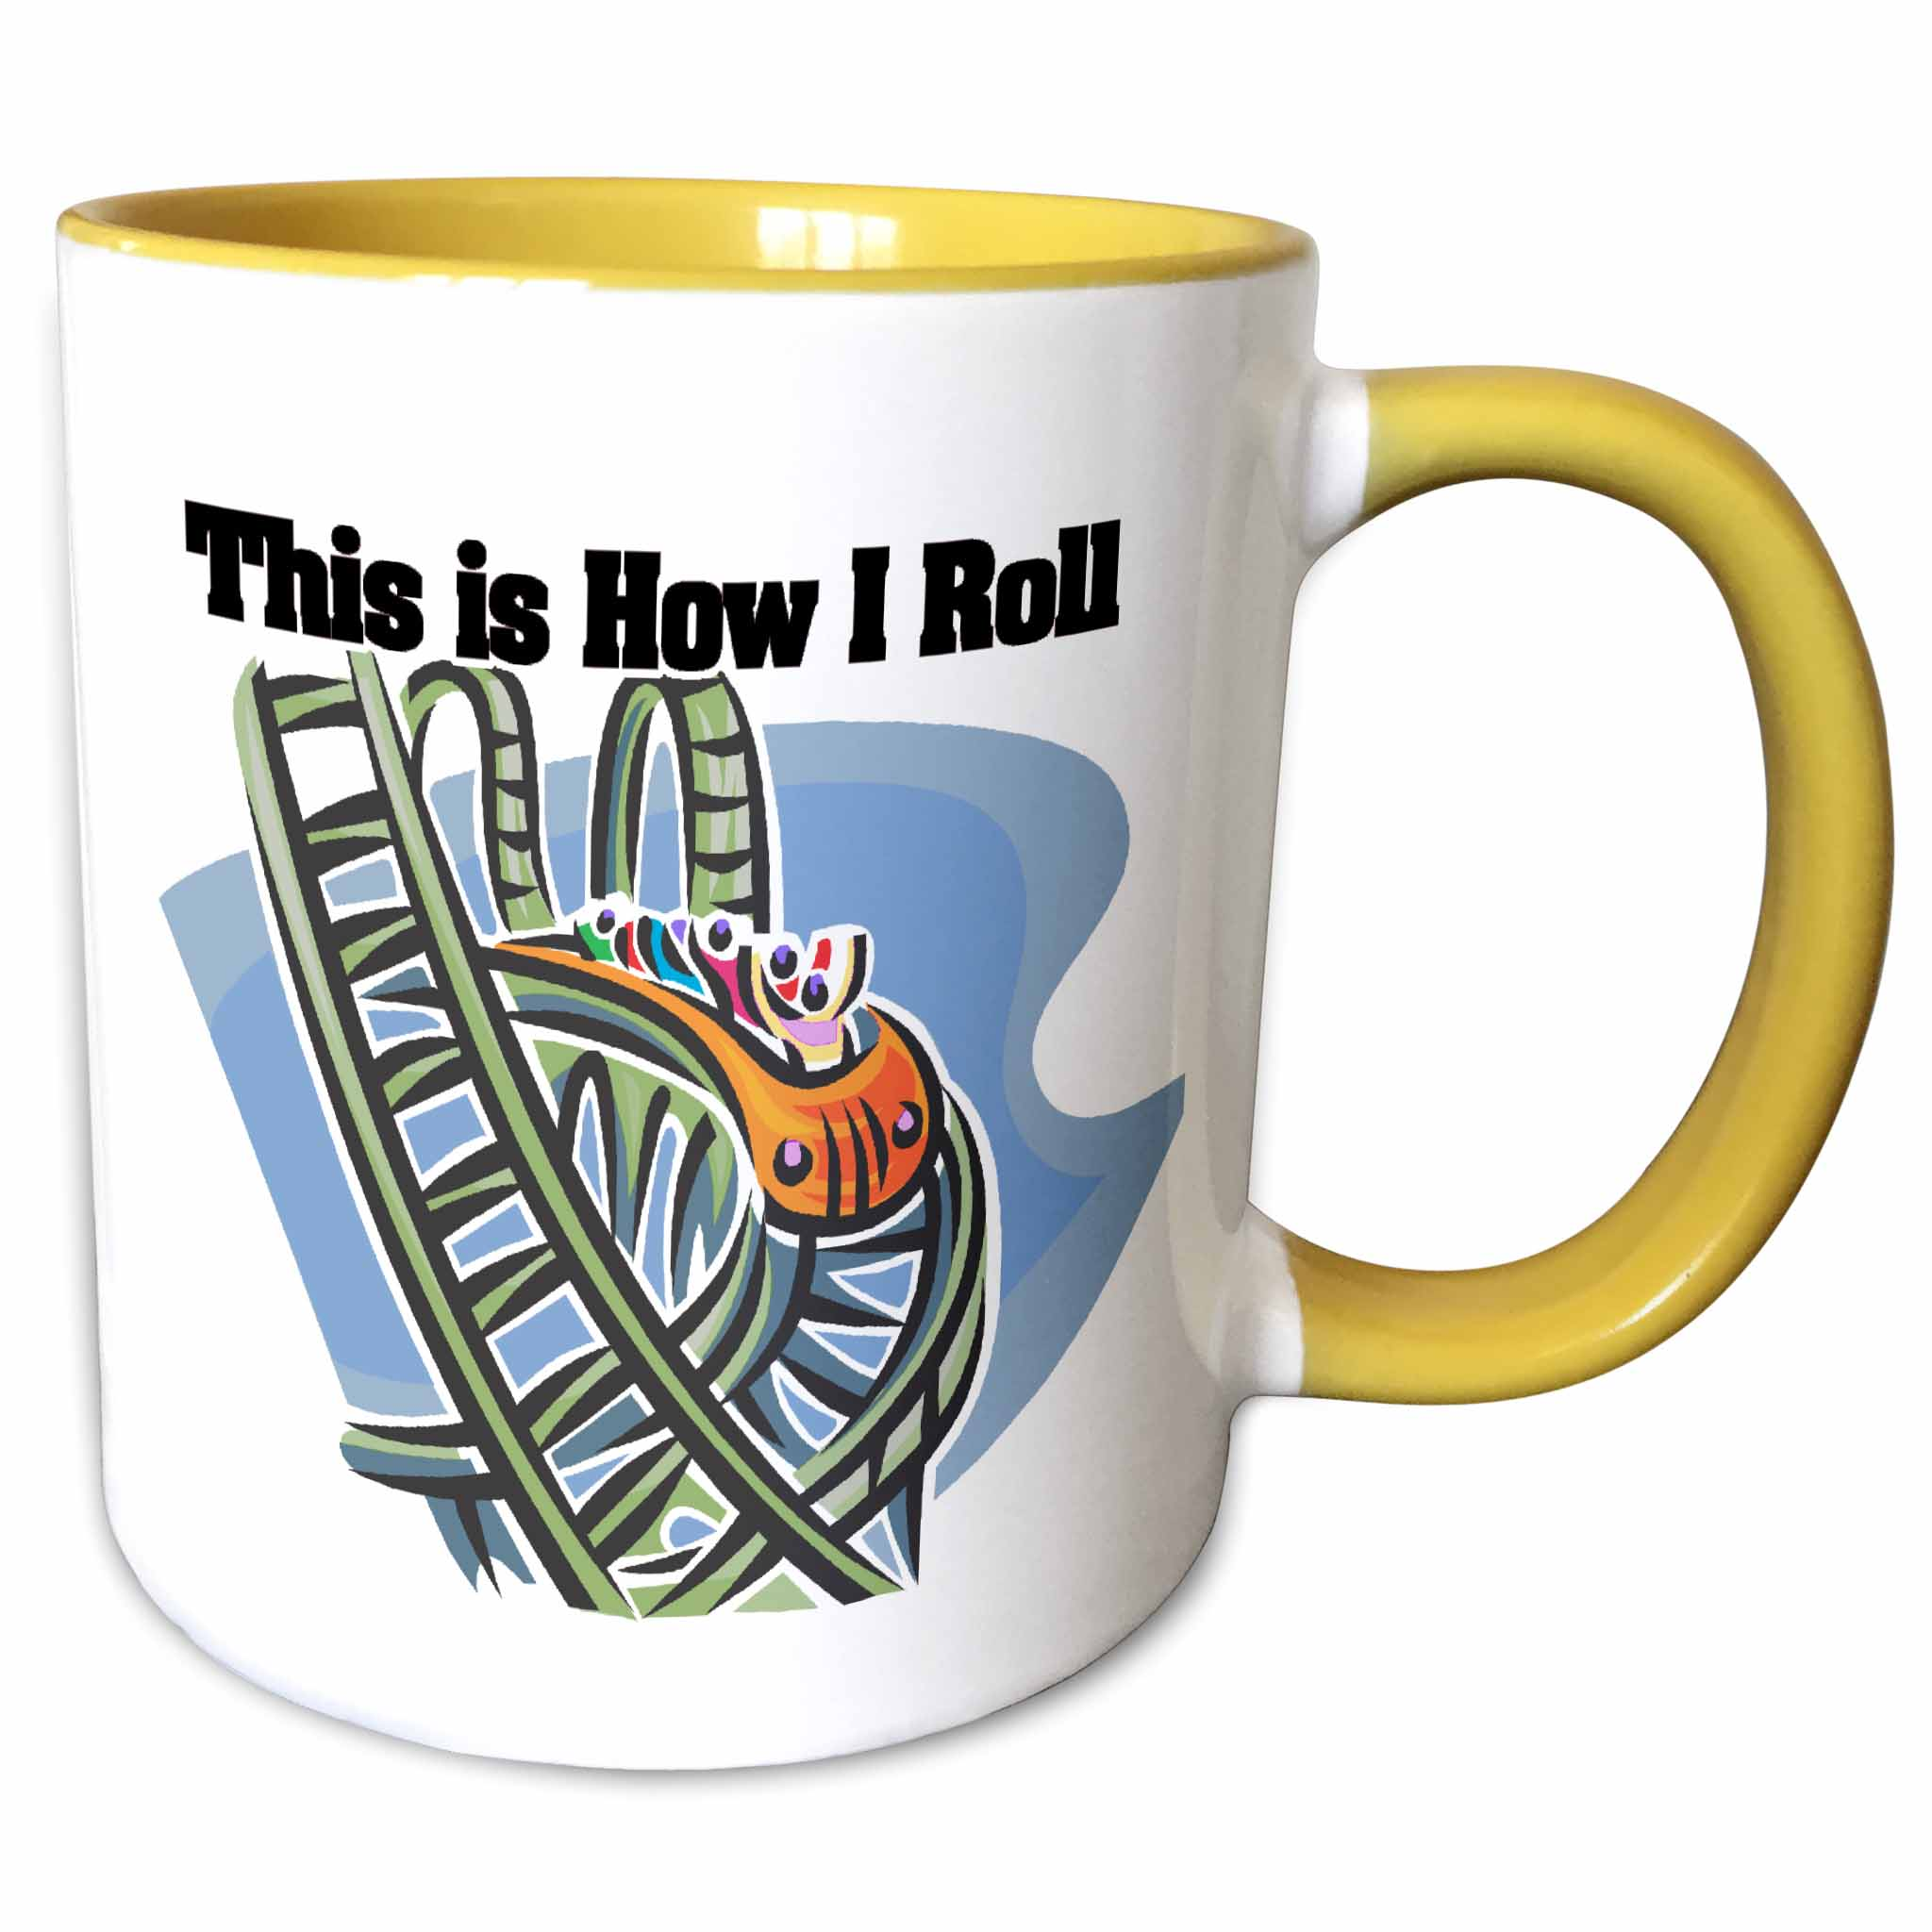 3dRose This Is How I Roll Roller Coaster - Two Tone Yellow Mug, 11-ounce